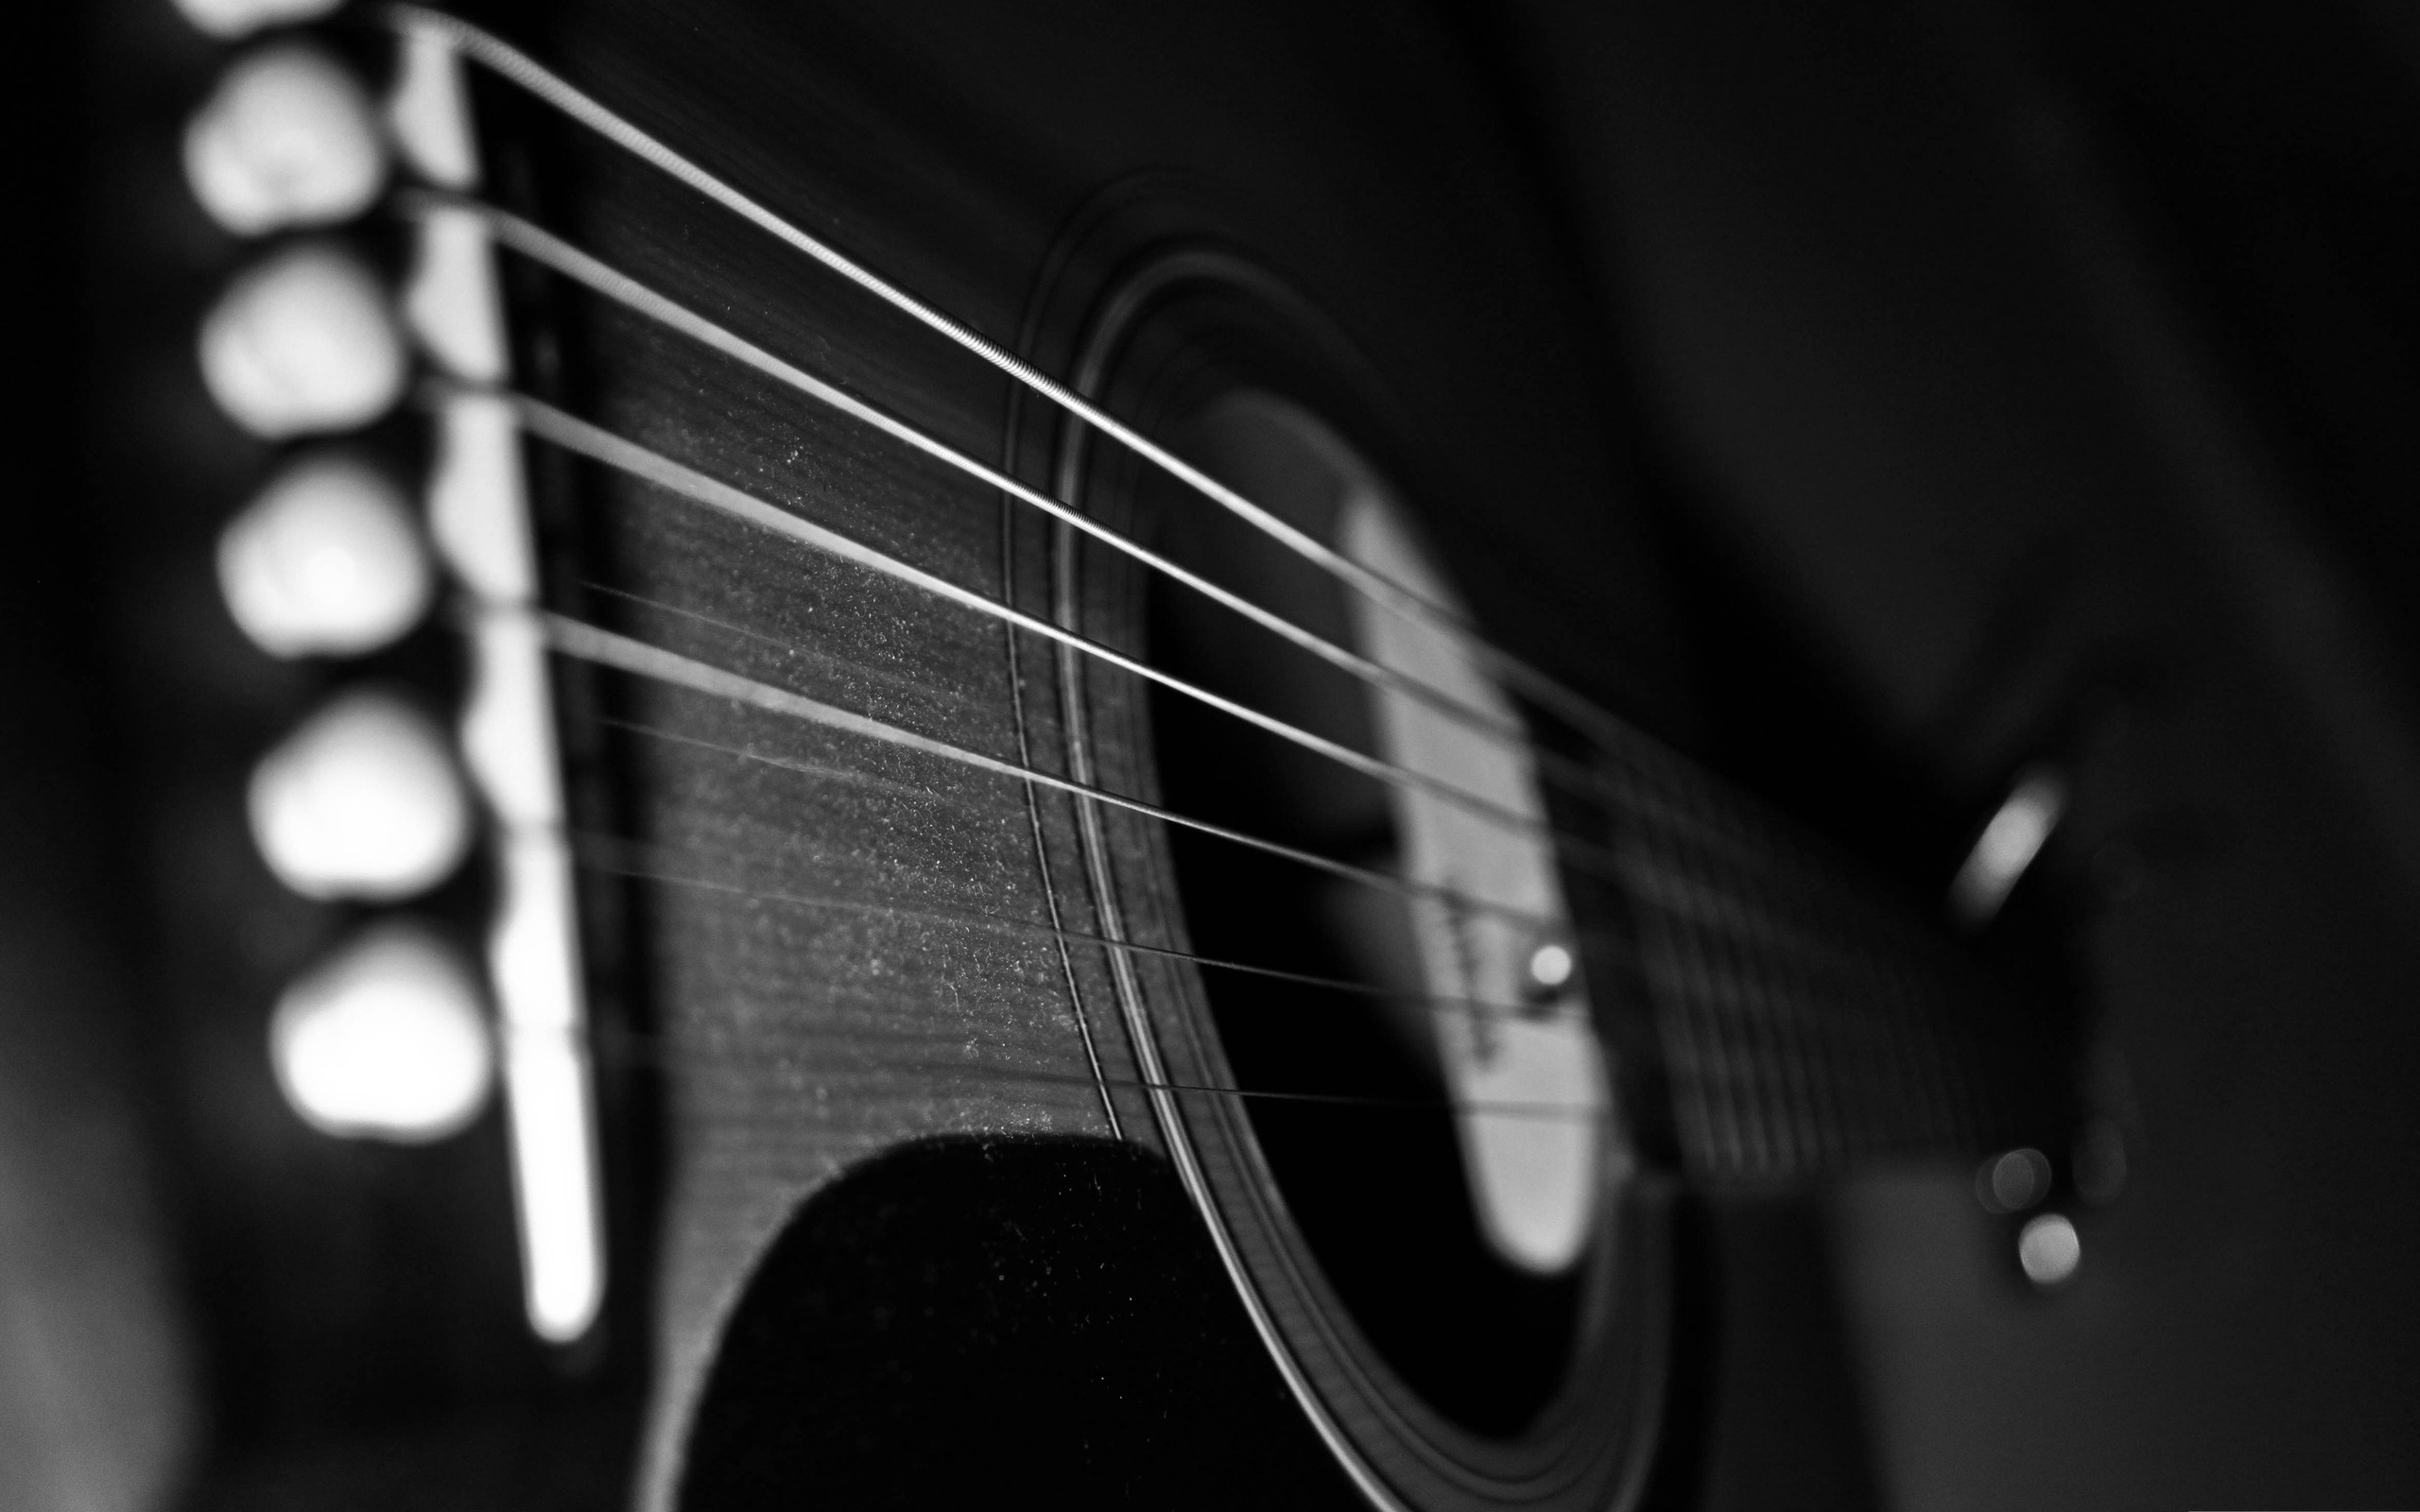 Guitar Strings Wallpaper